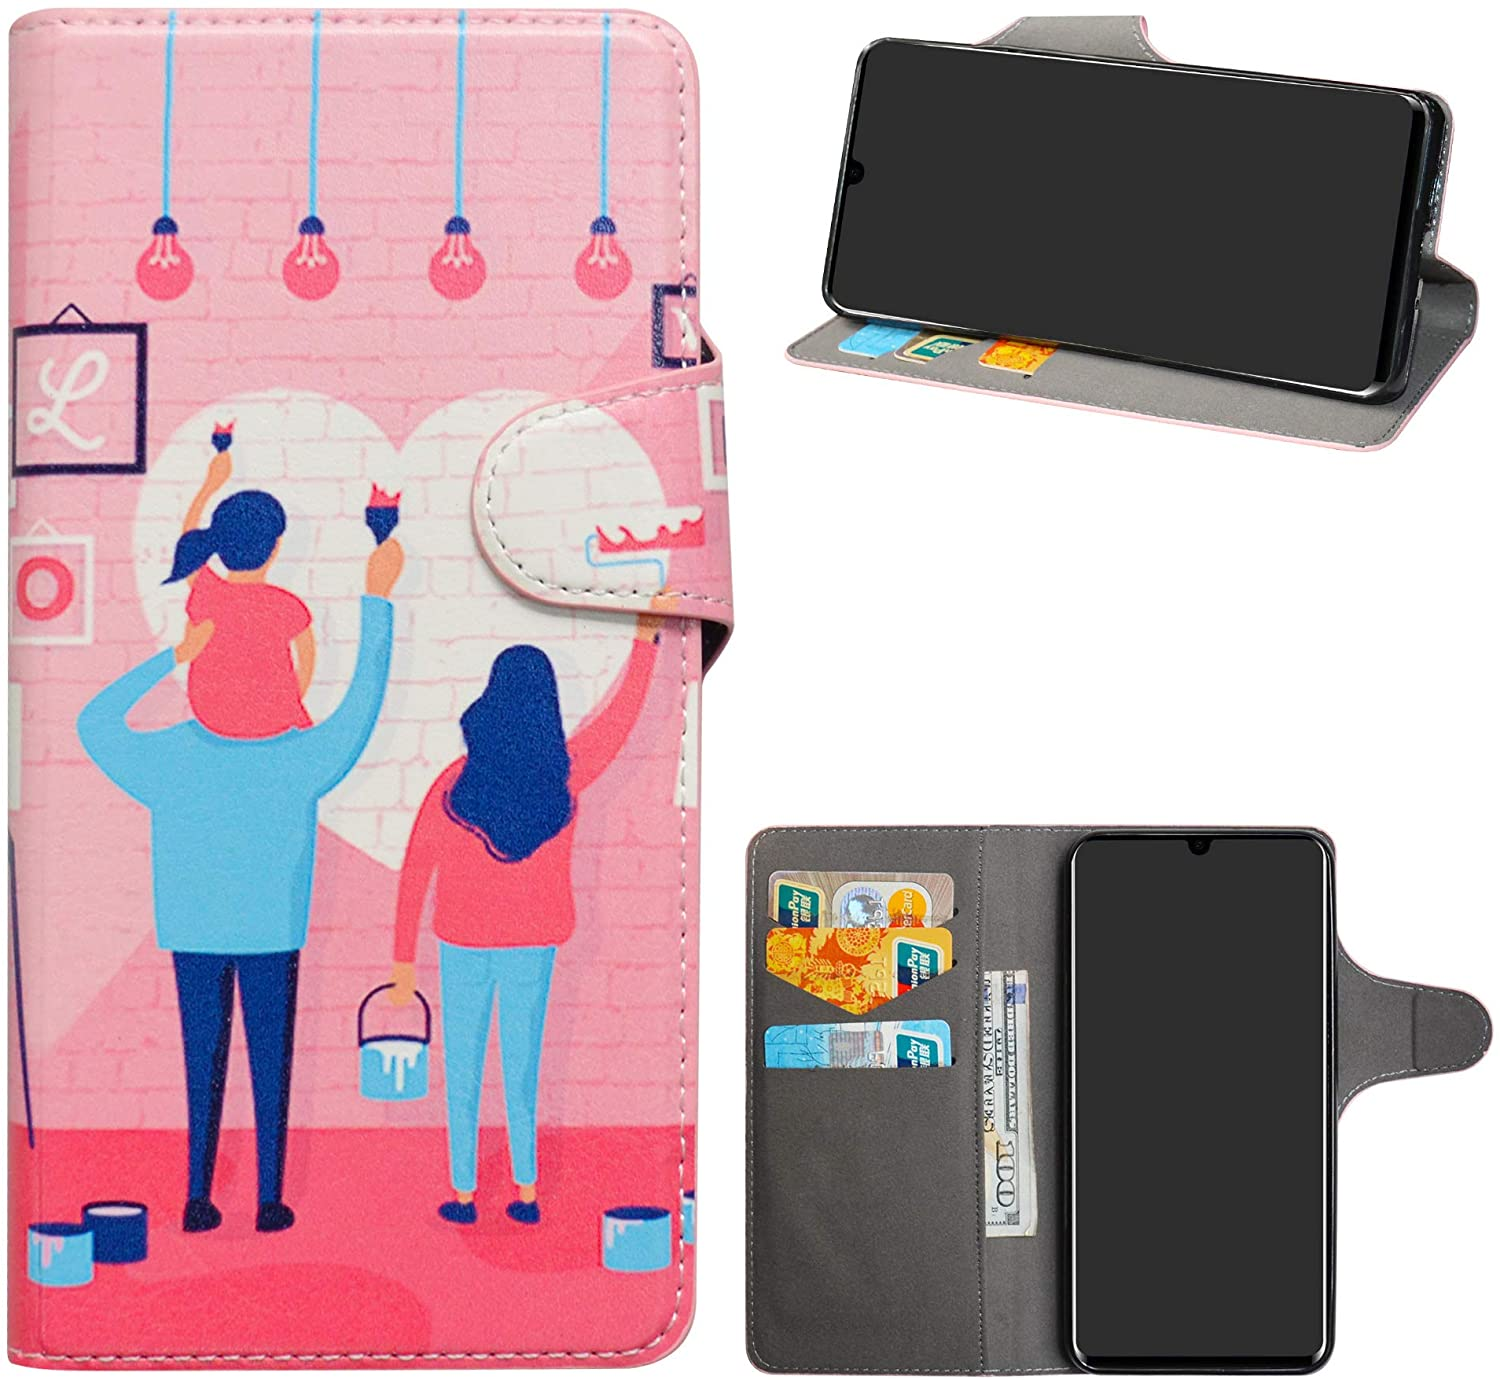 HHDY Compatible with Huawei P30 Pro Case,Flip PU Leather Wallet with Viewing Stand/Card Slots Pattern Design Cover for Huawei P30 Pro,Family